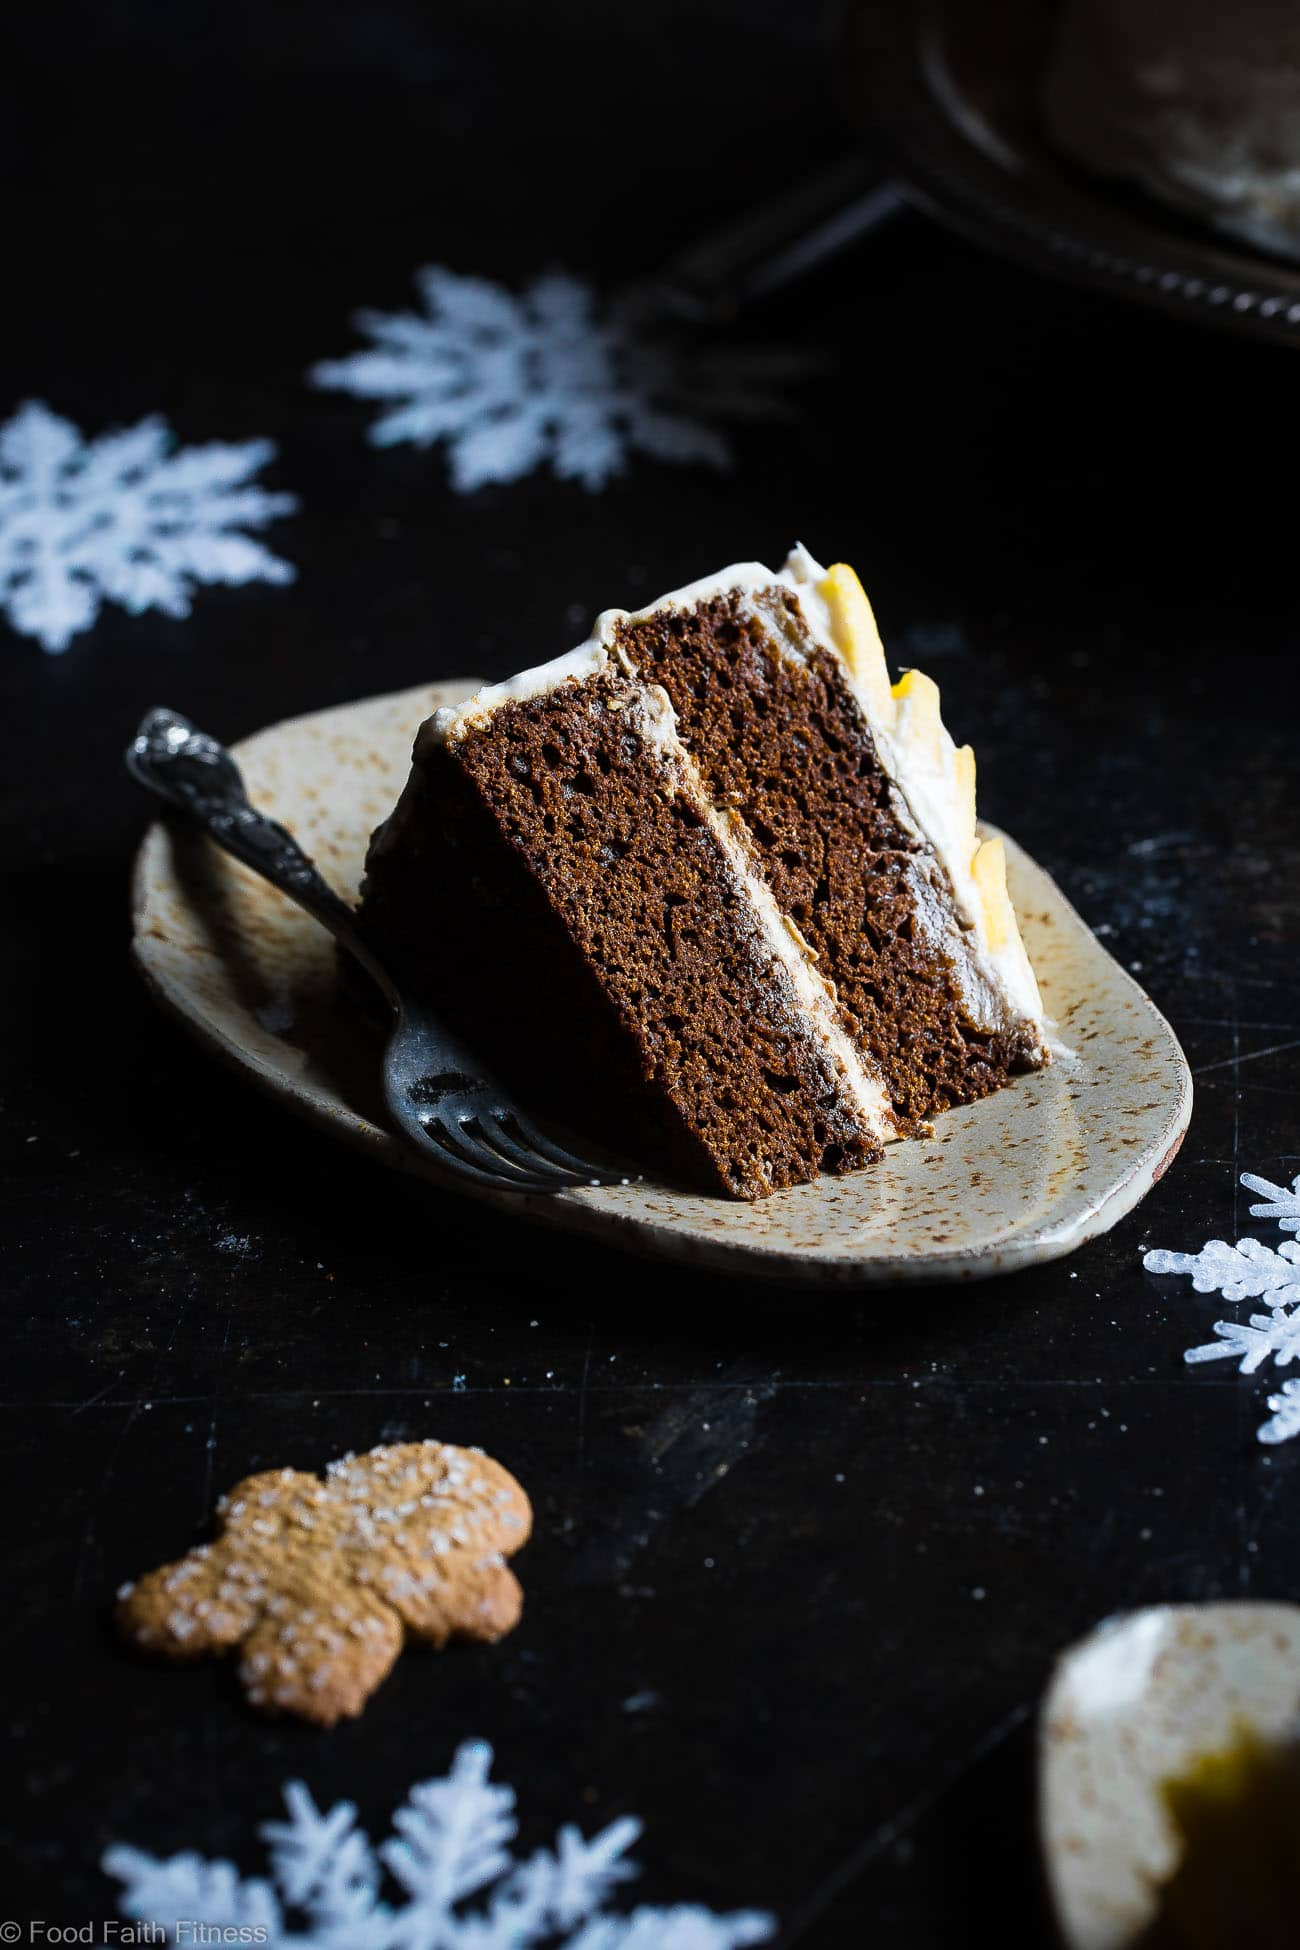 Gluten Free Mango Gingerbread Cake with Coconut Cream -This spicy-sweet, show stopping gluten free gingerbread cake recipe is studded with juicy, fresh mangoes to create a healthy, paleo-friendly, festive dessert for the Holidays! | Foodfaithfitness.com | @FoodFaithFit